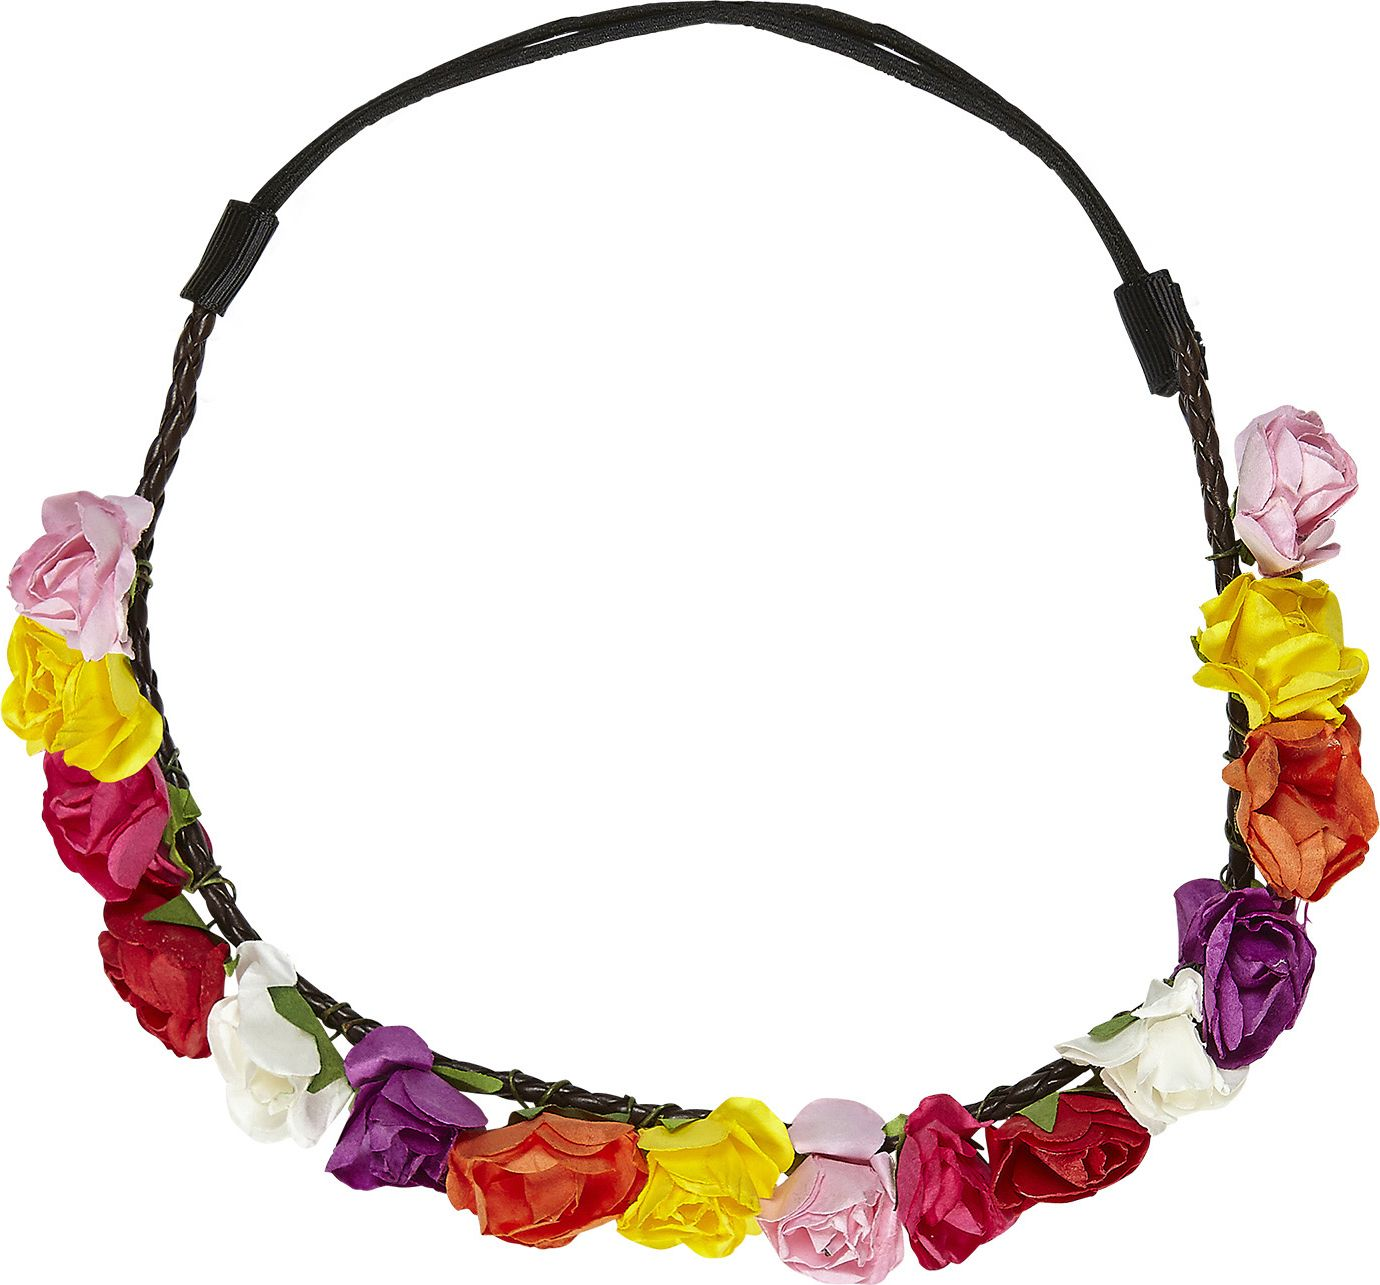 60's flower power hoofdband